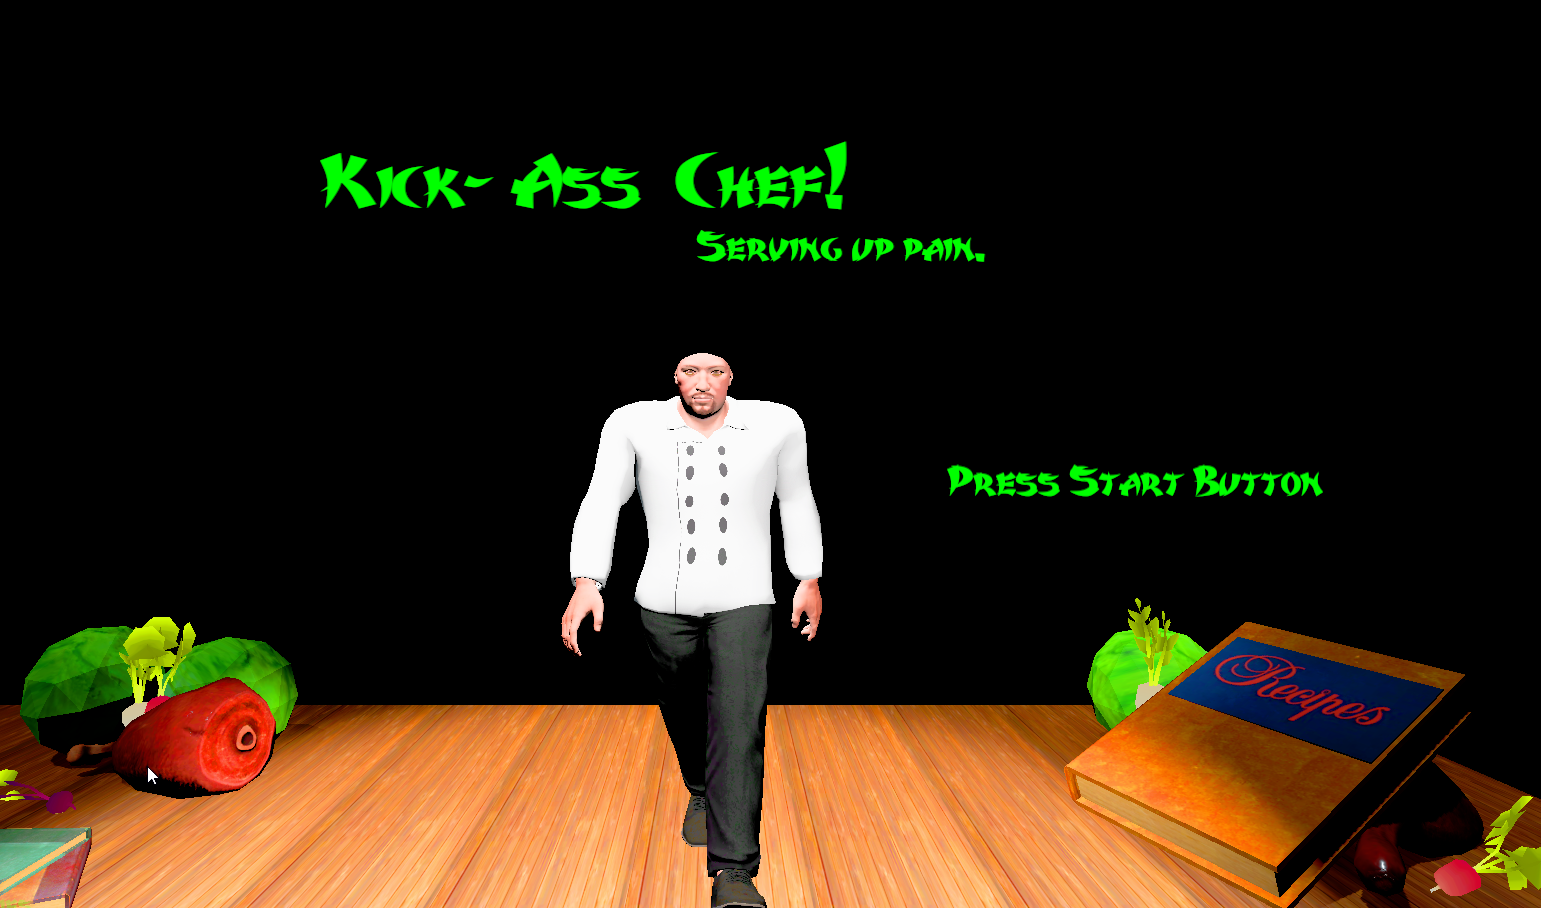 Kick-Ass Chef